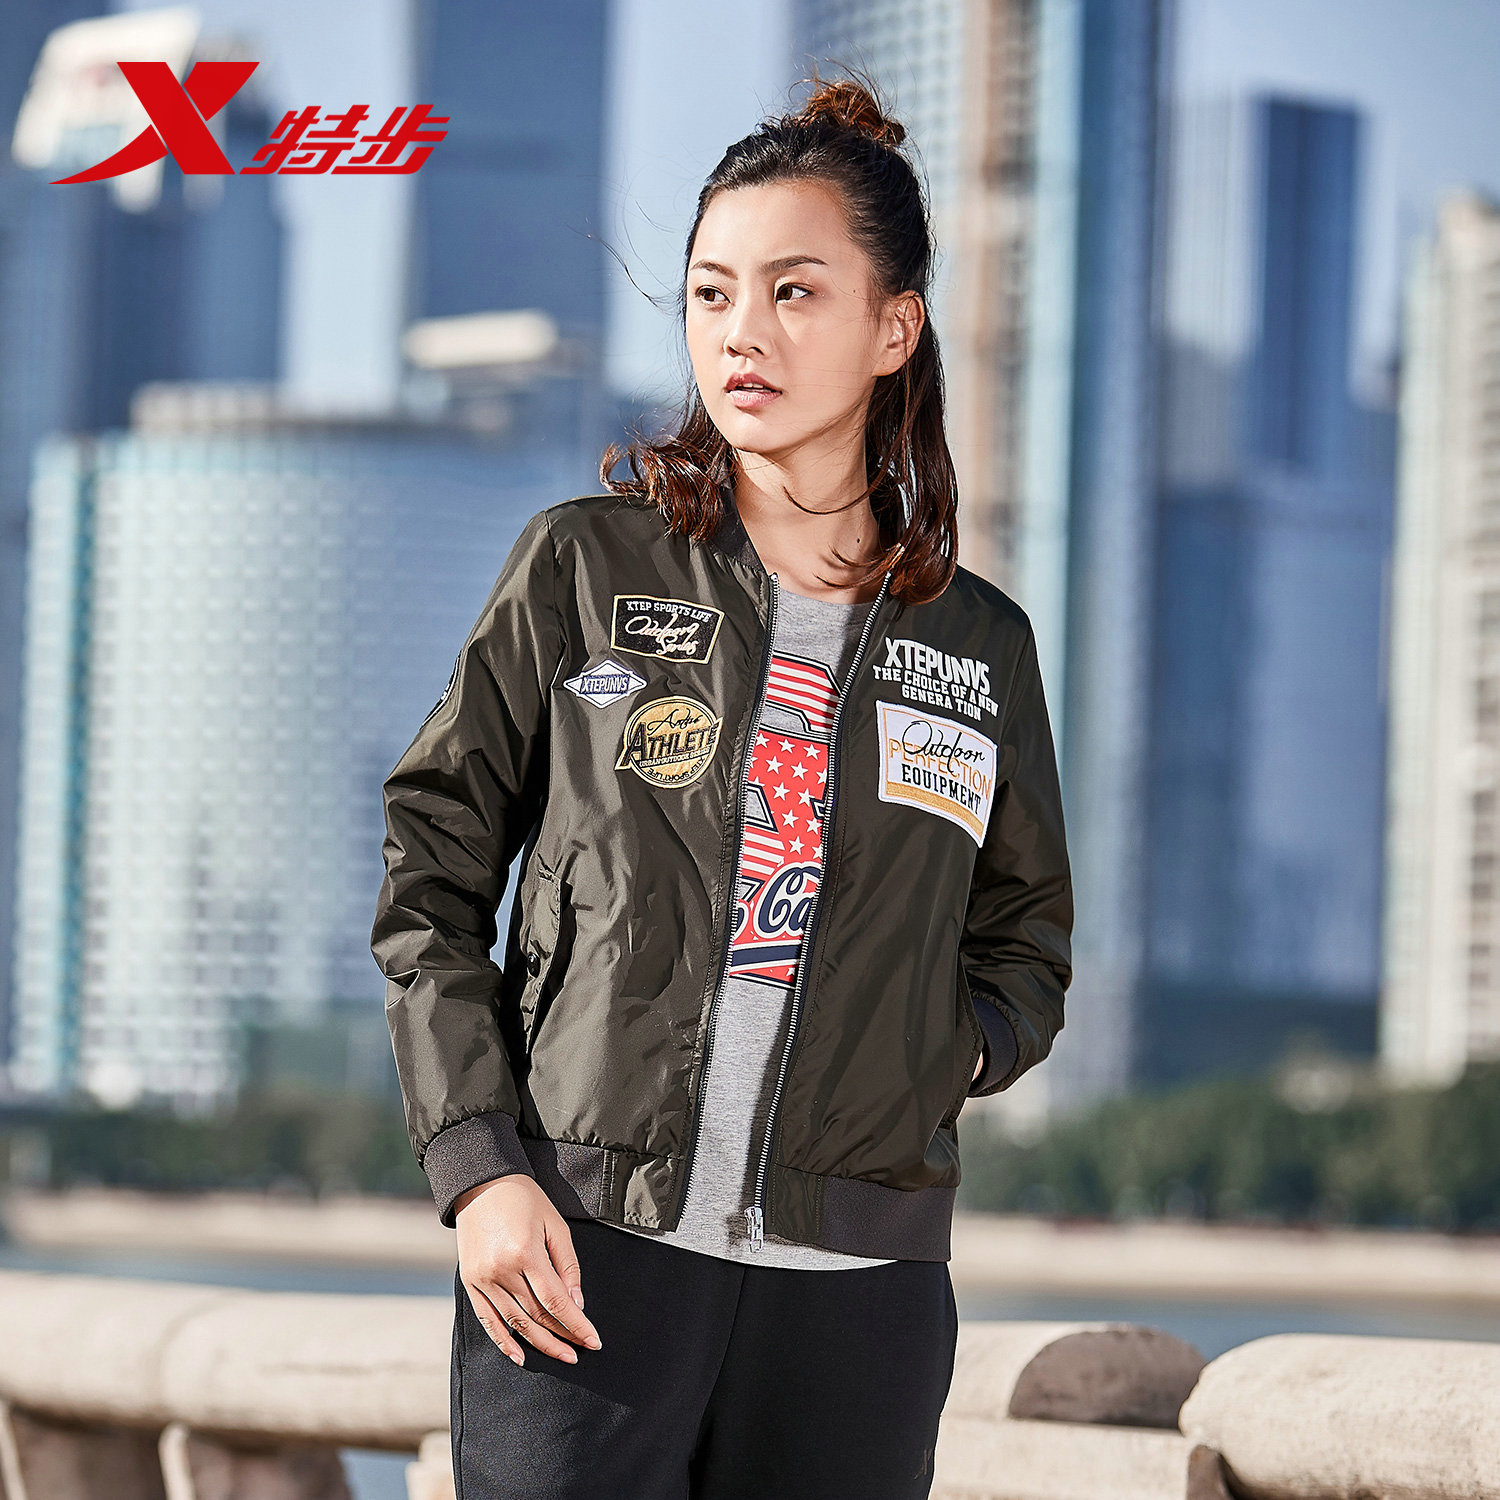 1c91379e0 Xtep jacket women's jacket spring and autumn new women's double ...